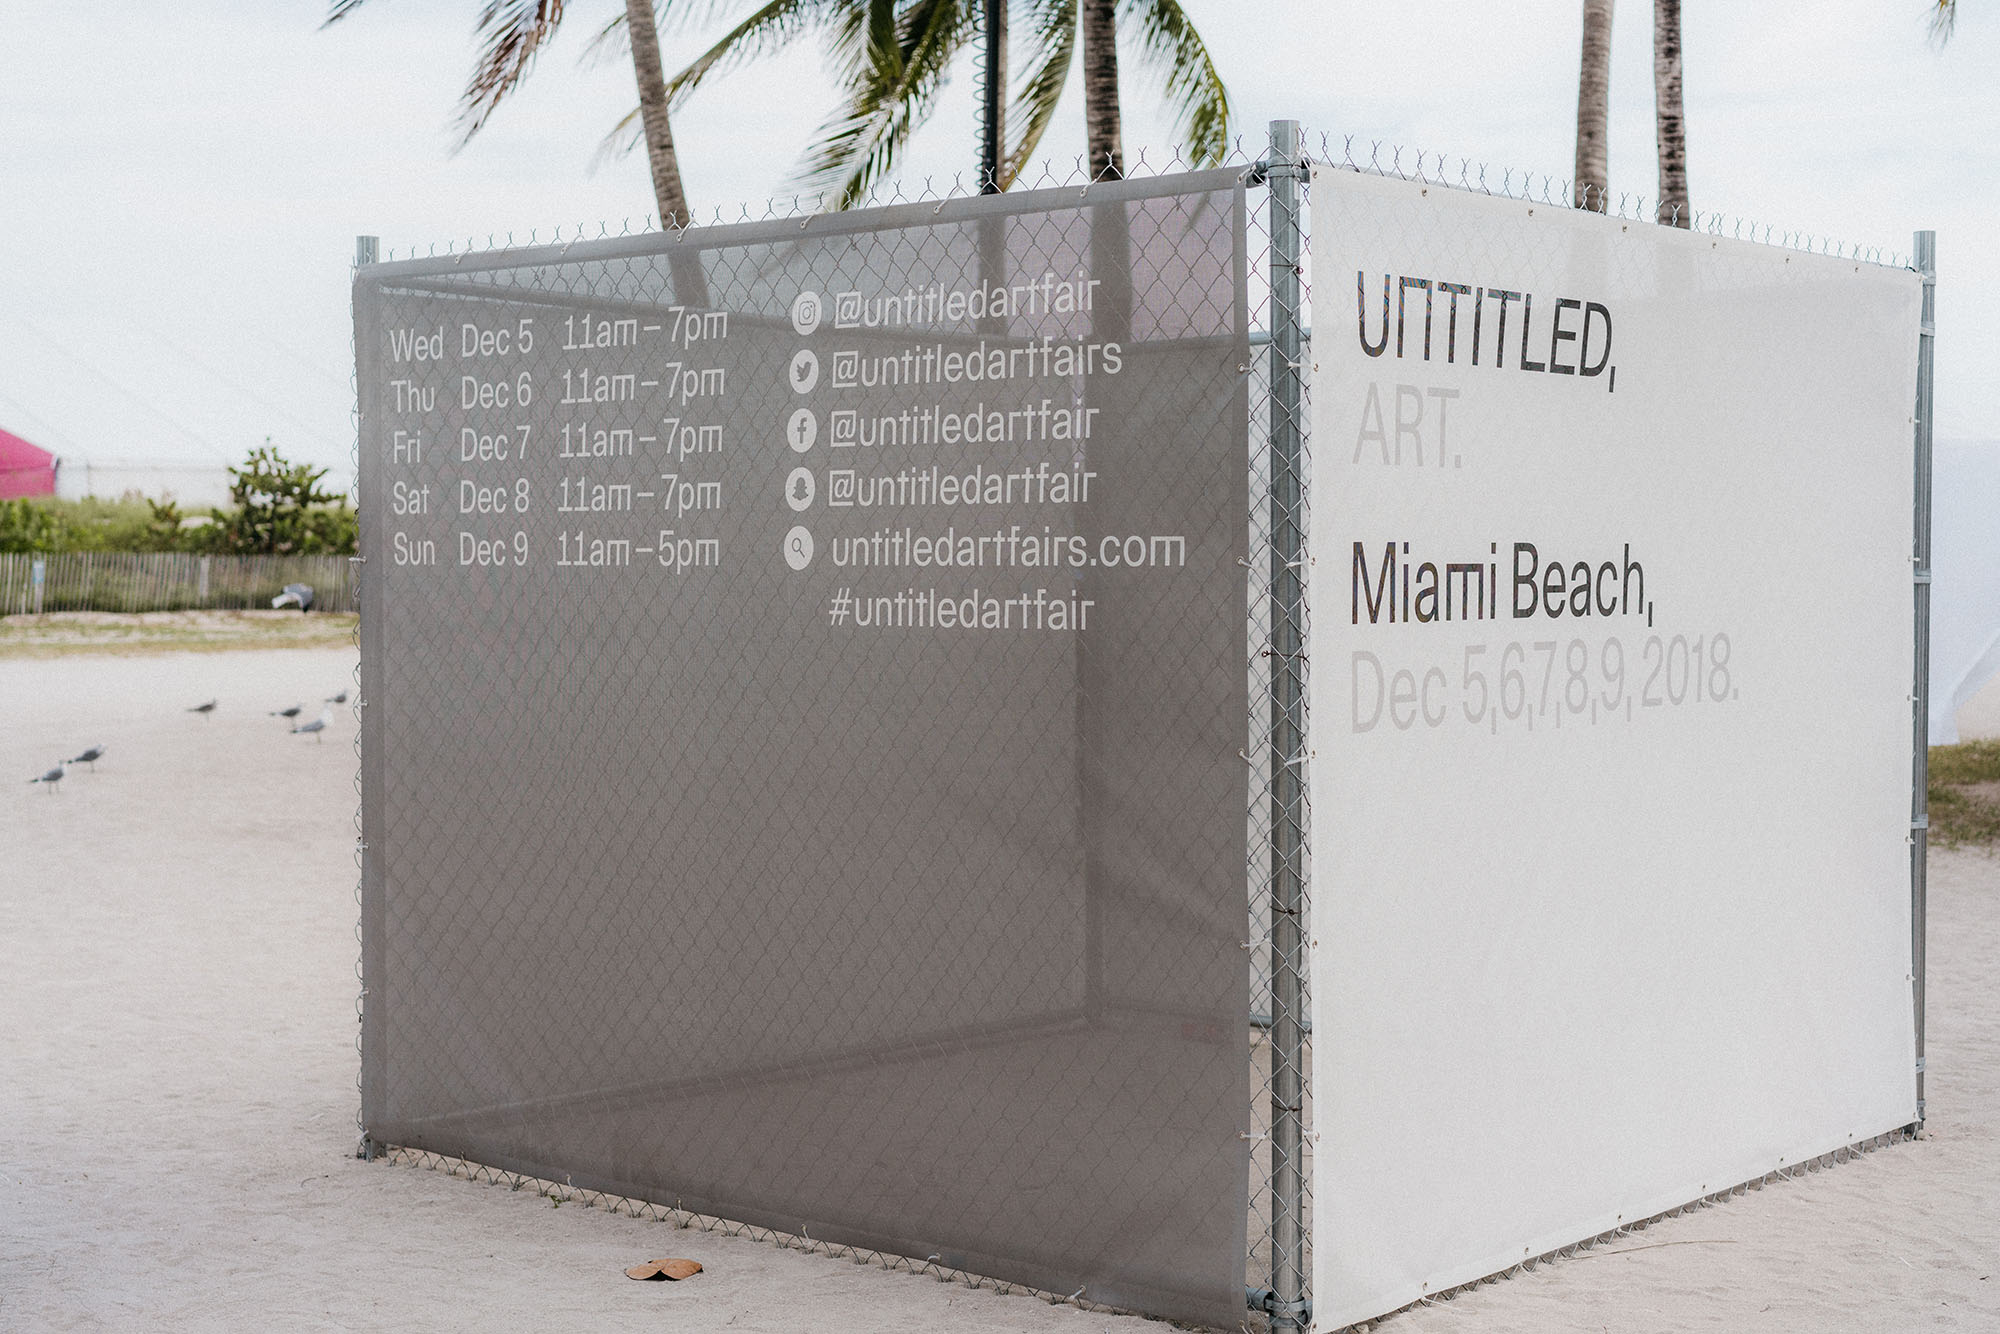 Untitled Art, Miami Beach